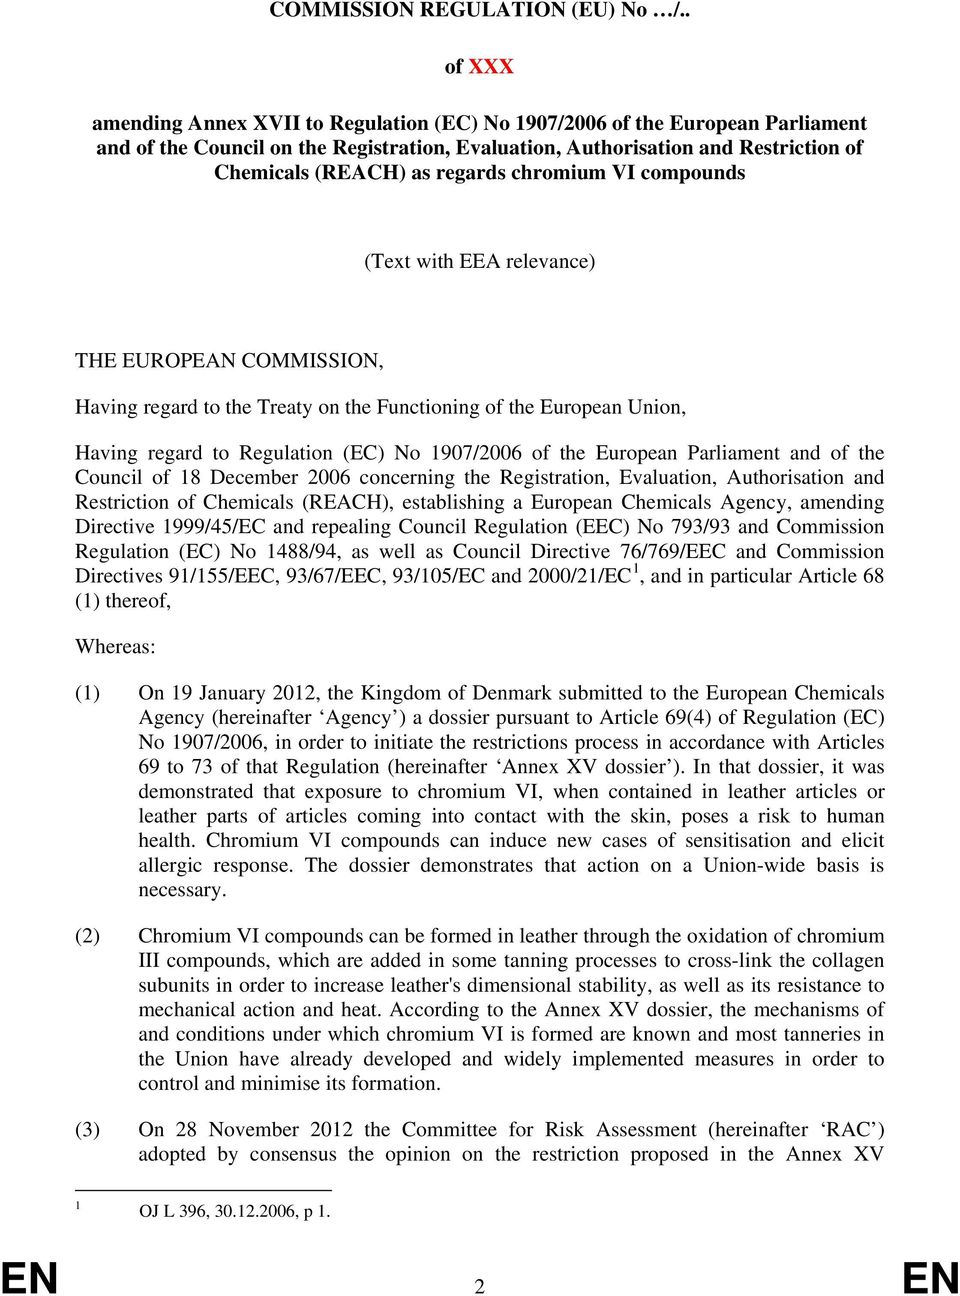 regards chromium VI compounds (Text with EEA relevance) THE EUROPEAN COMMISSION, Having regard to the Treaty on the Functioning of the European Union, Having regard to Regulation (EC) No 1907/2006 of